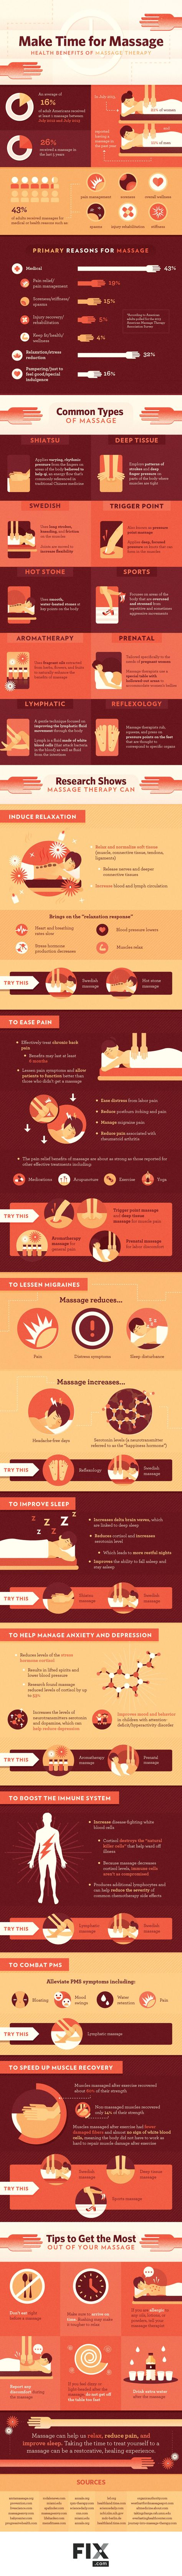 Why Massages Are Great For Your Health (Infographic)